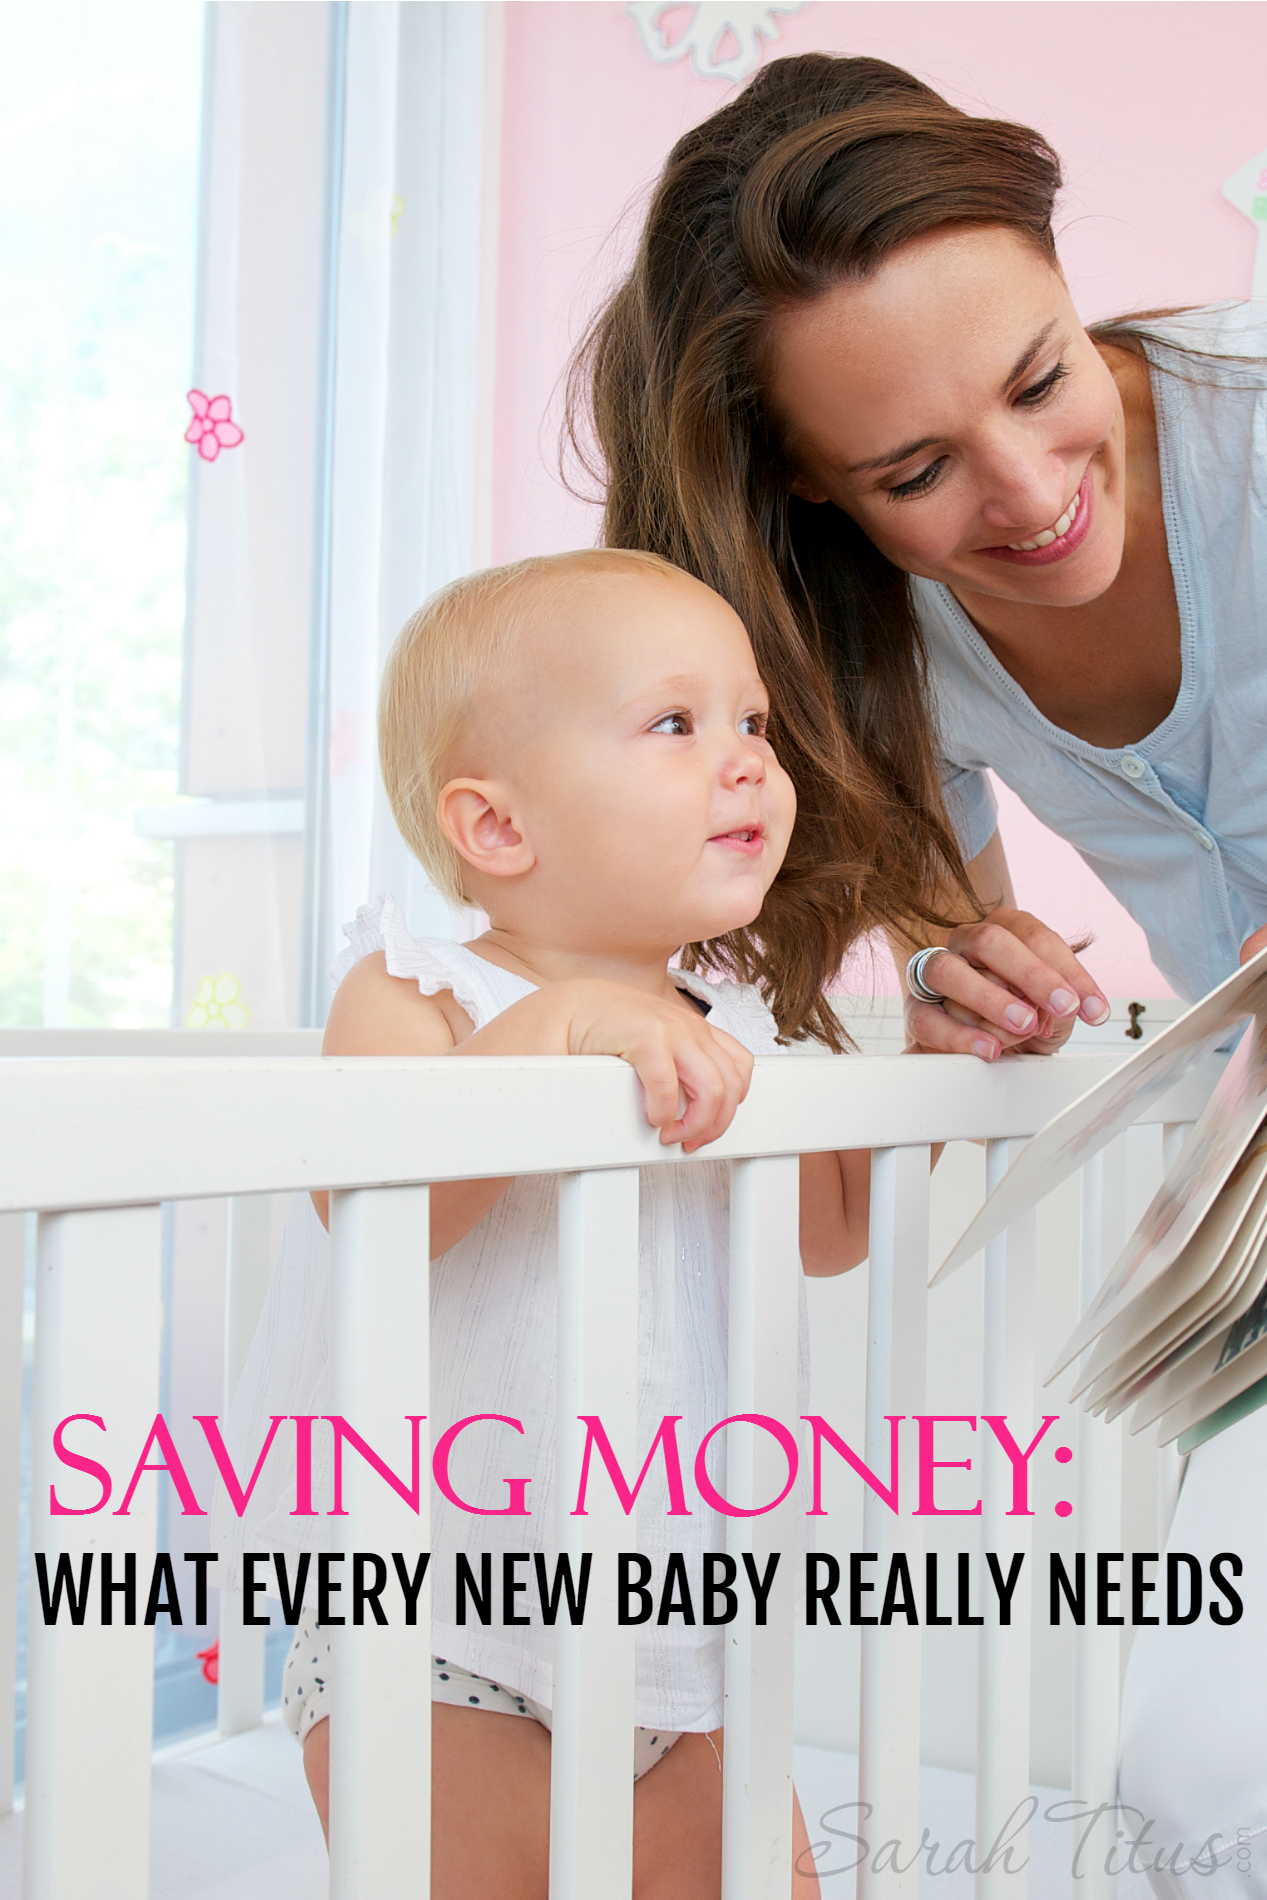 Kids don't have to be expensive. Here you will find a checklist for saving money: what every new baby REALLY needs and what they don't!